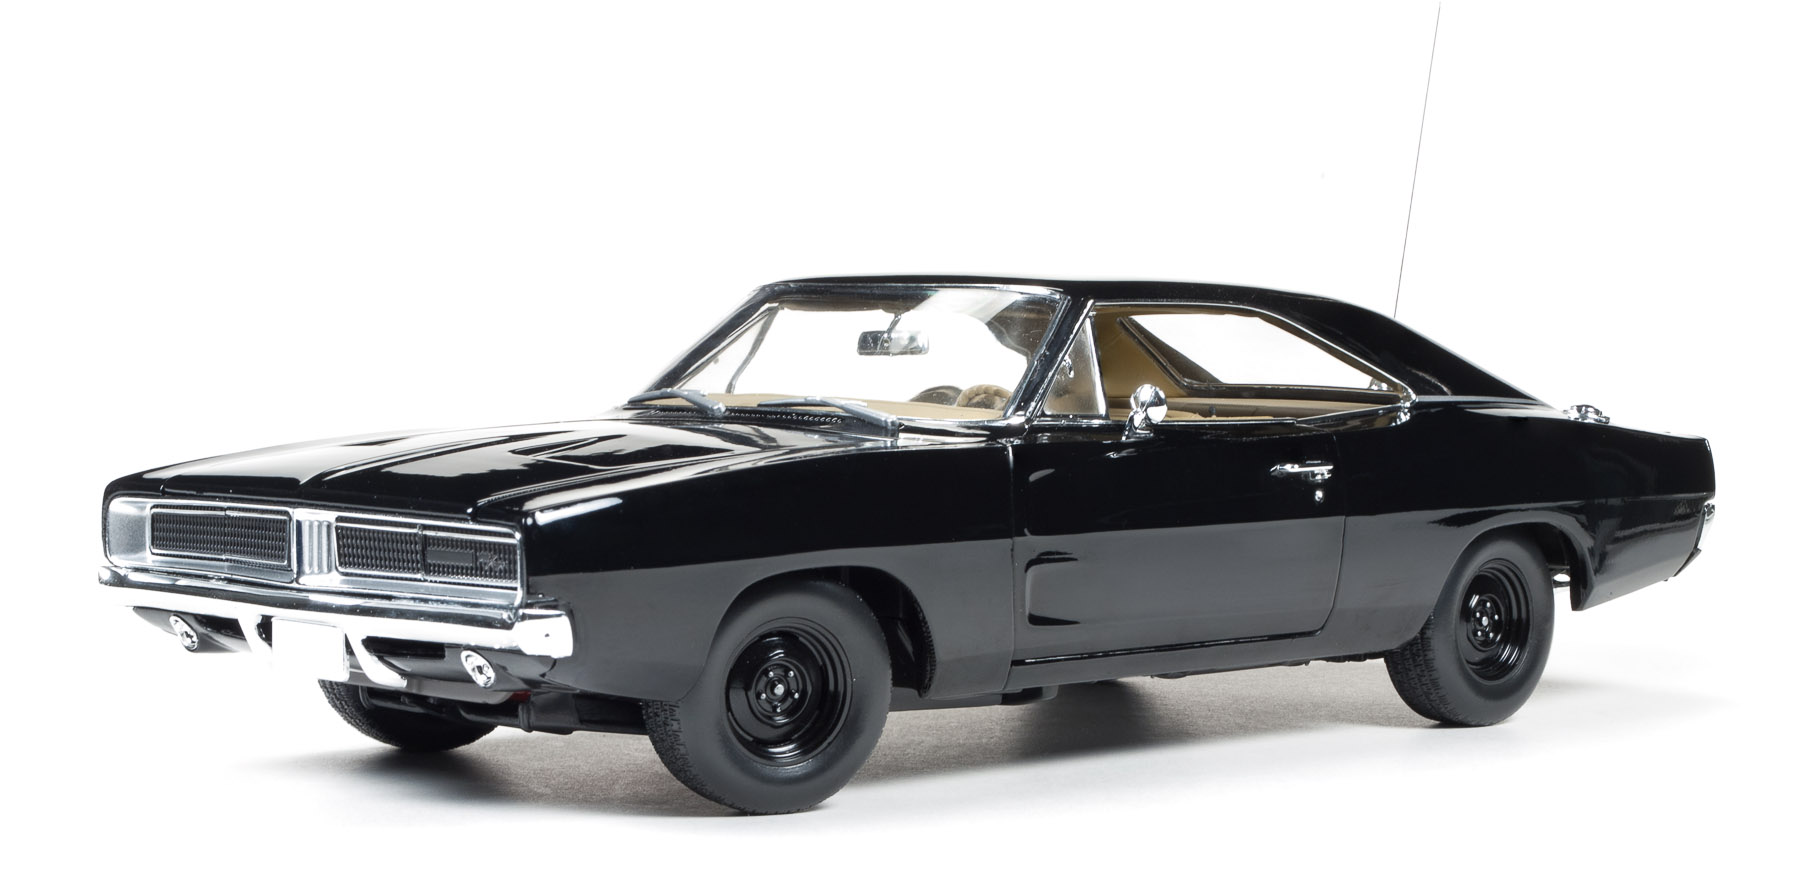 DODGE CHARGER 1969 BLACK AUTOWORLD (5)